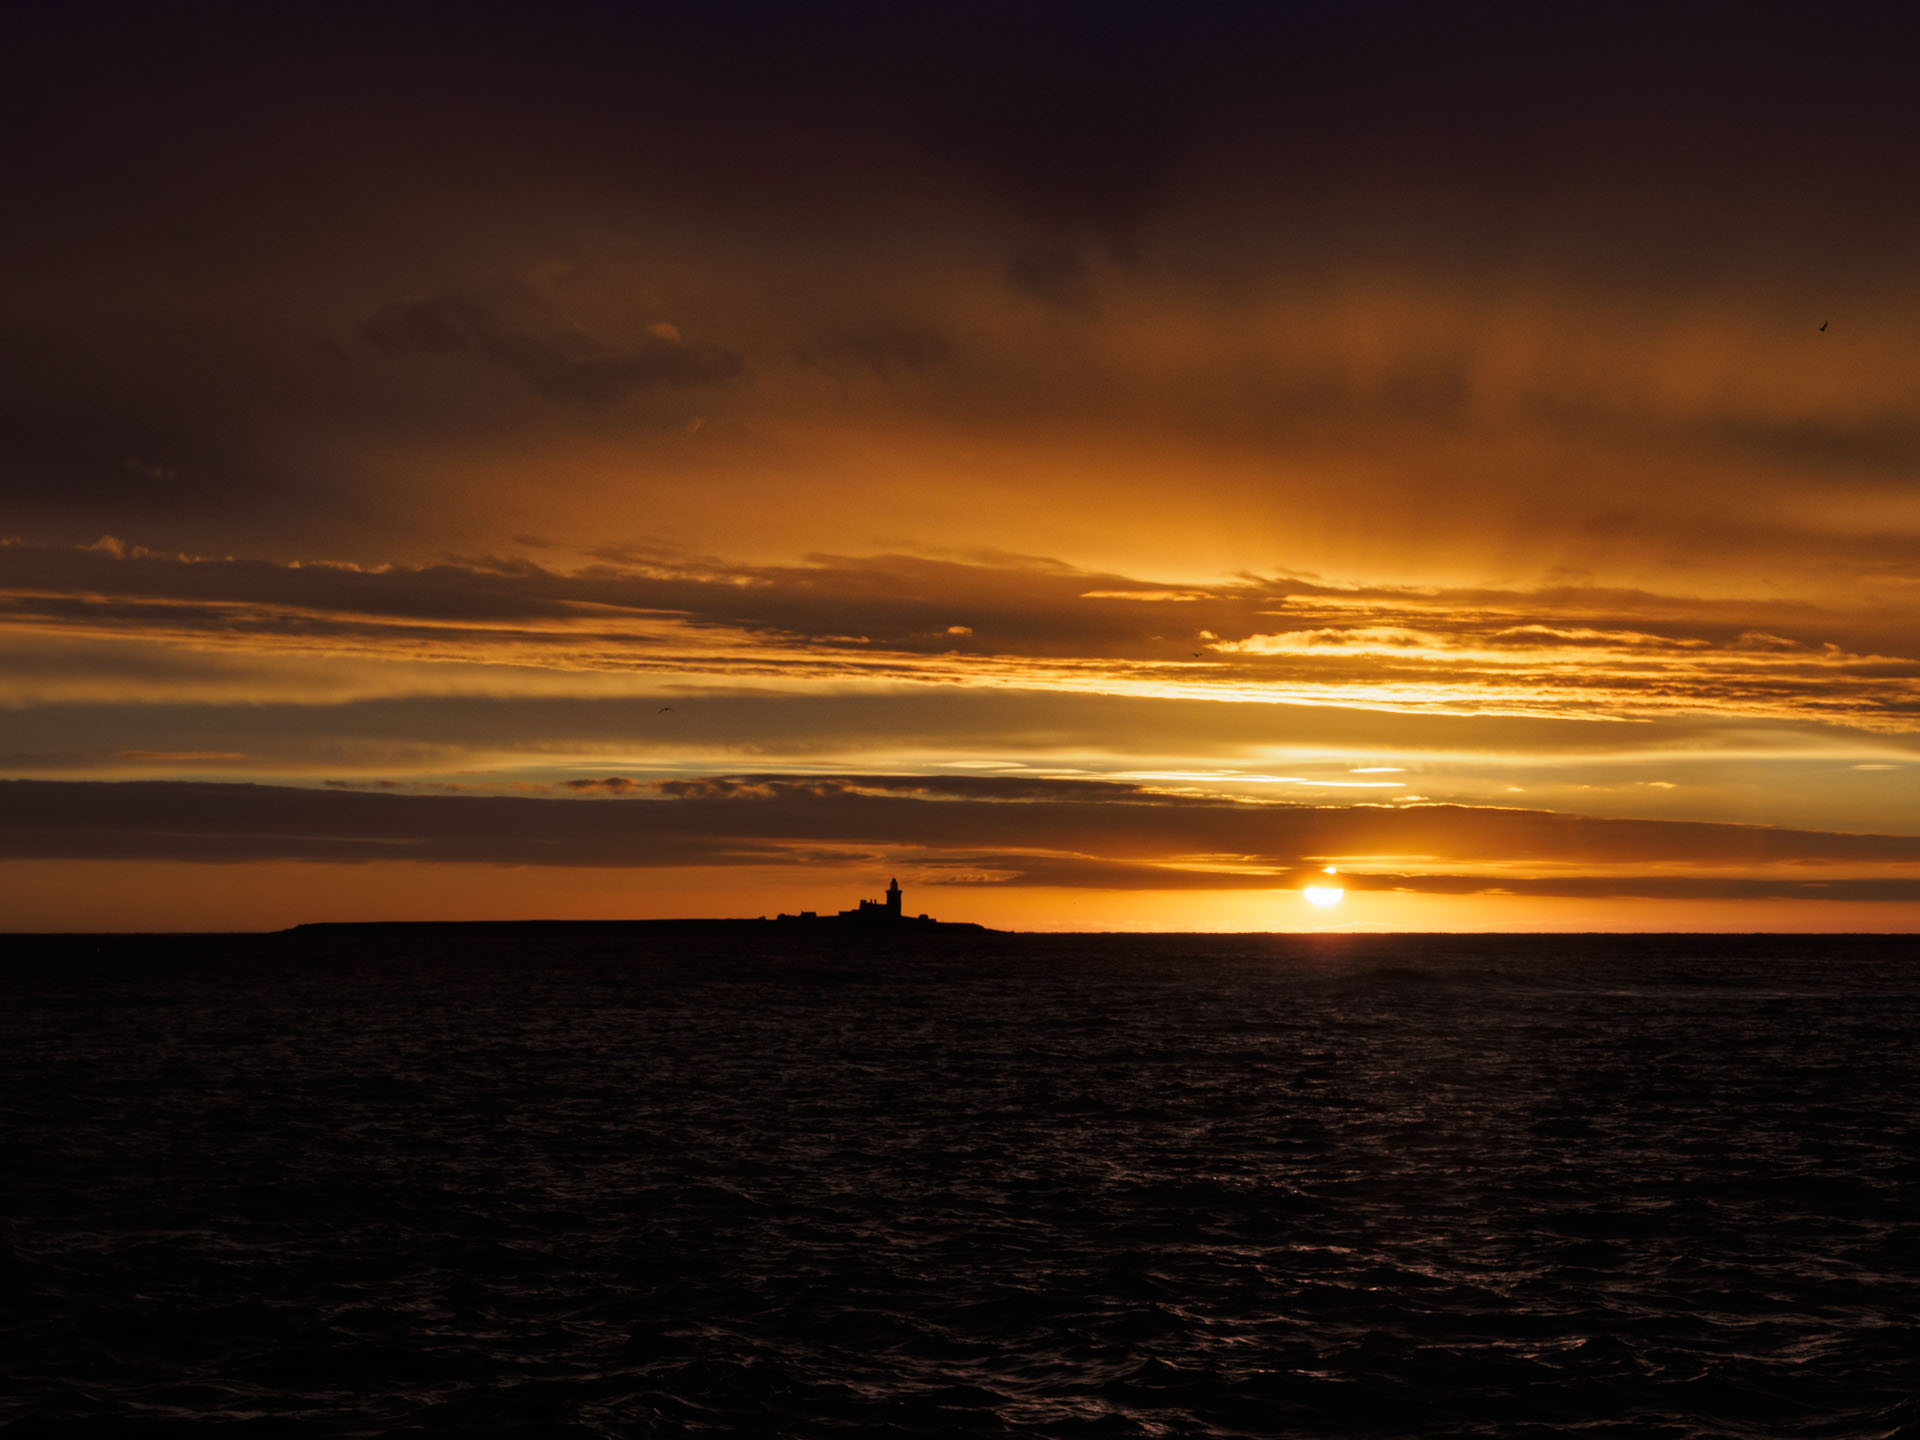 Website Image of the sun rising over Coquet Island